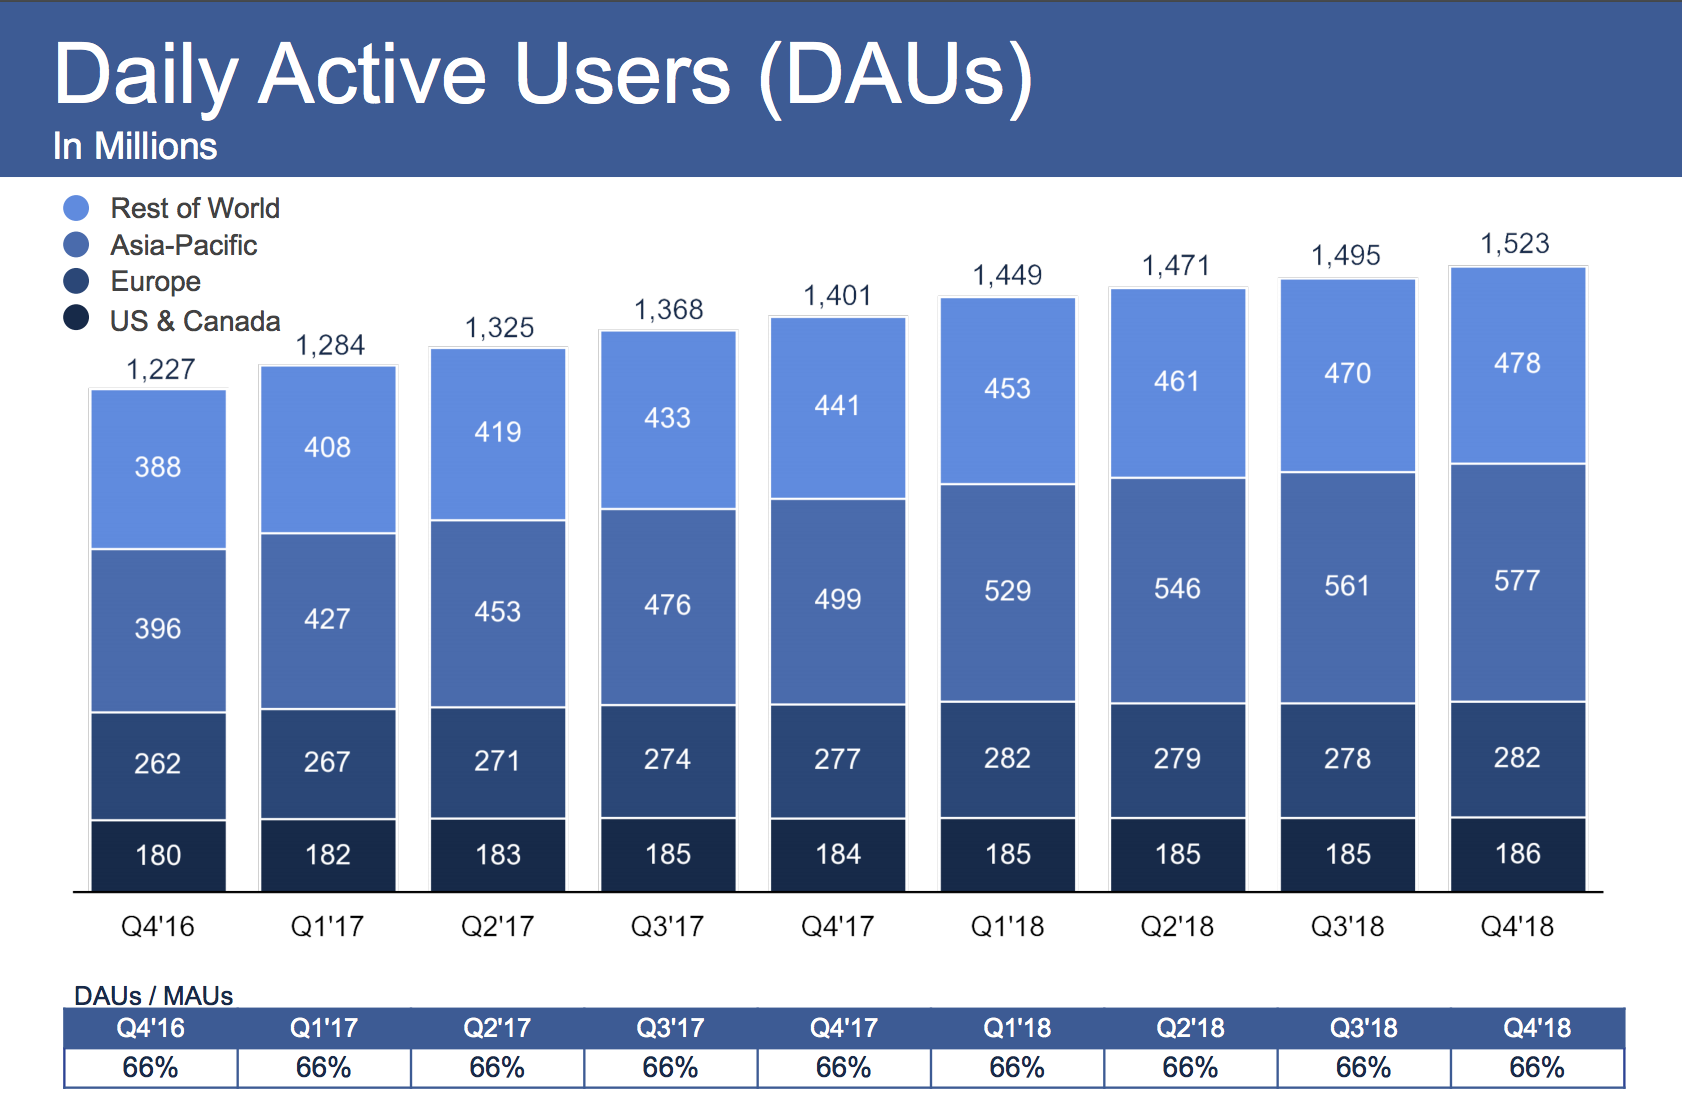 Facebook-Earnings-Q4-2018-DAU